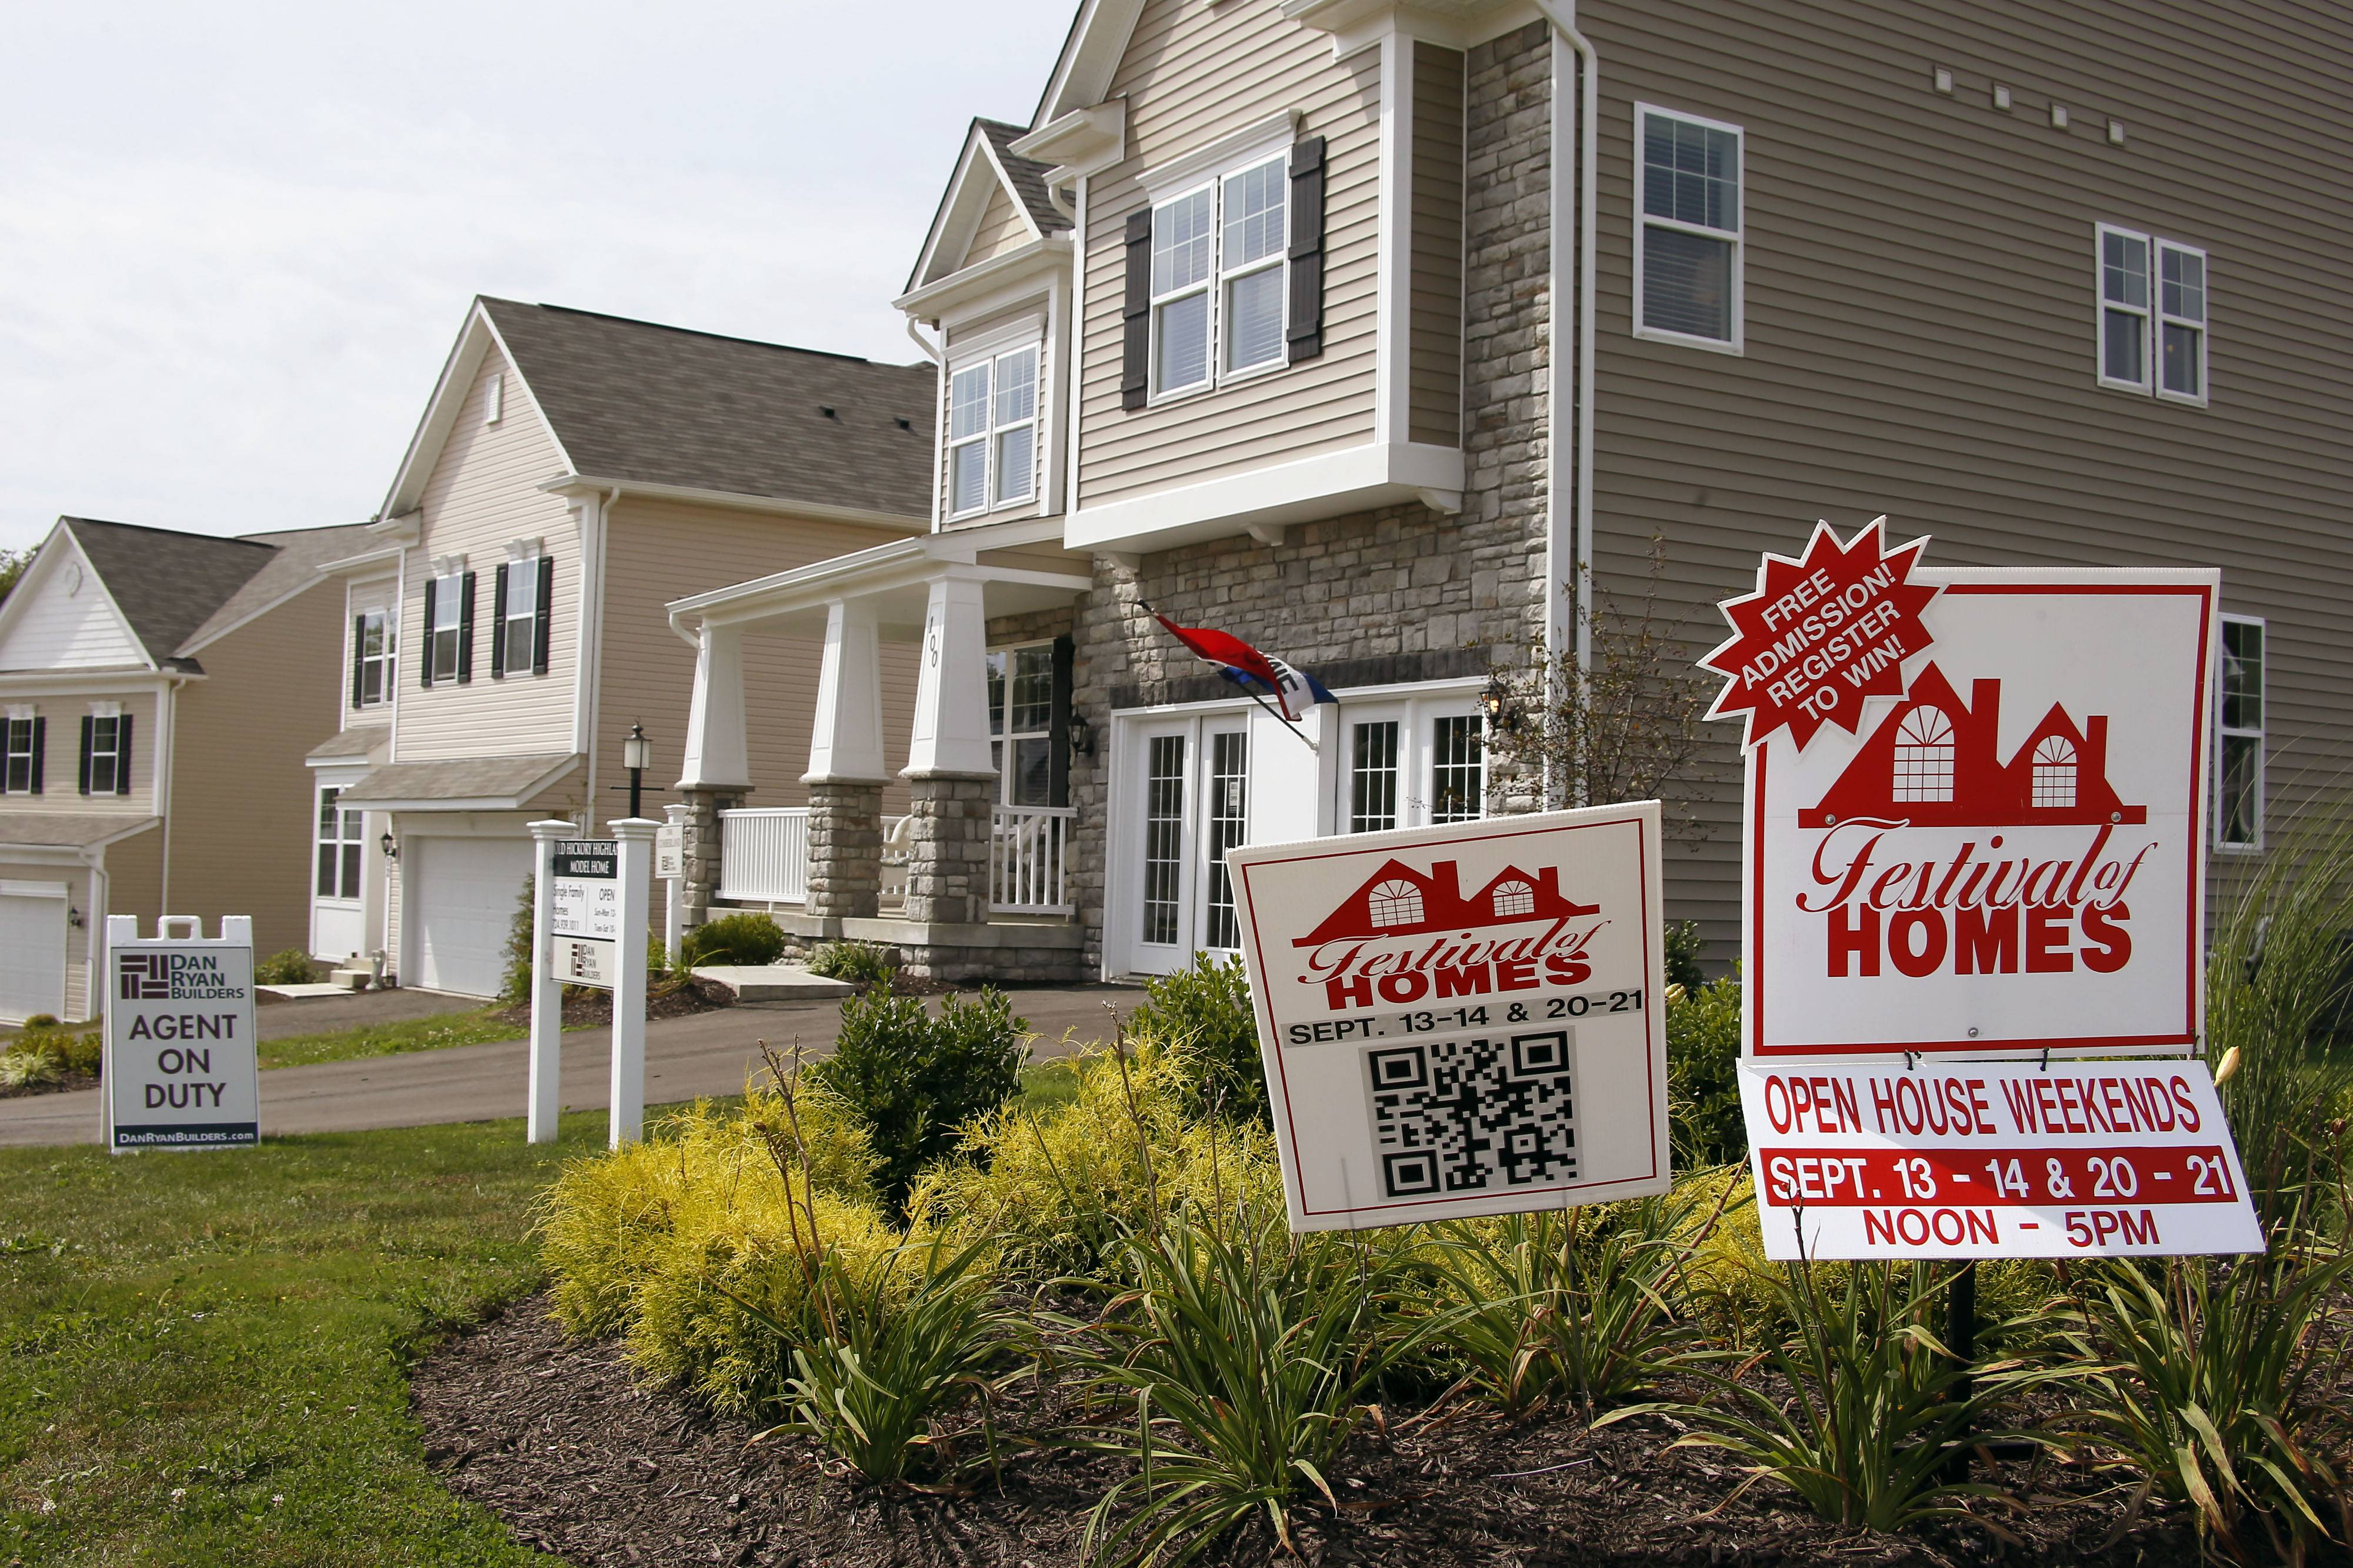 Mortgage applications last week climbed by the most in three months as Americans rushed to refinance their homes amid rising interest rates.